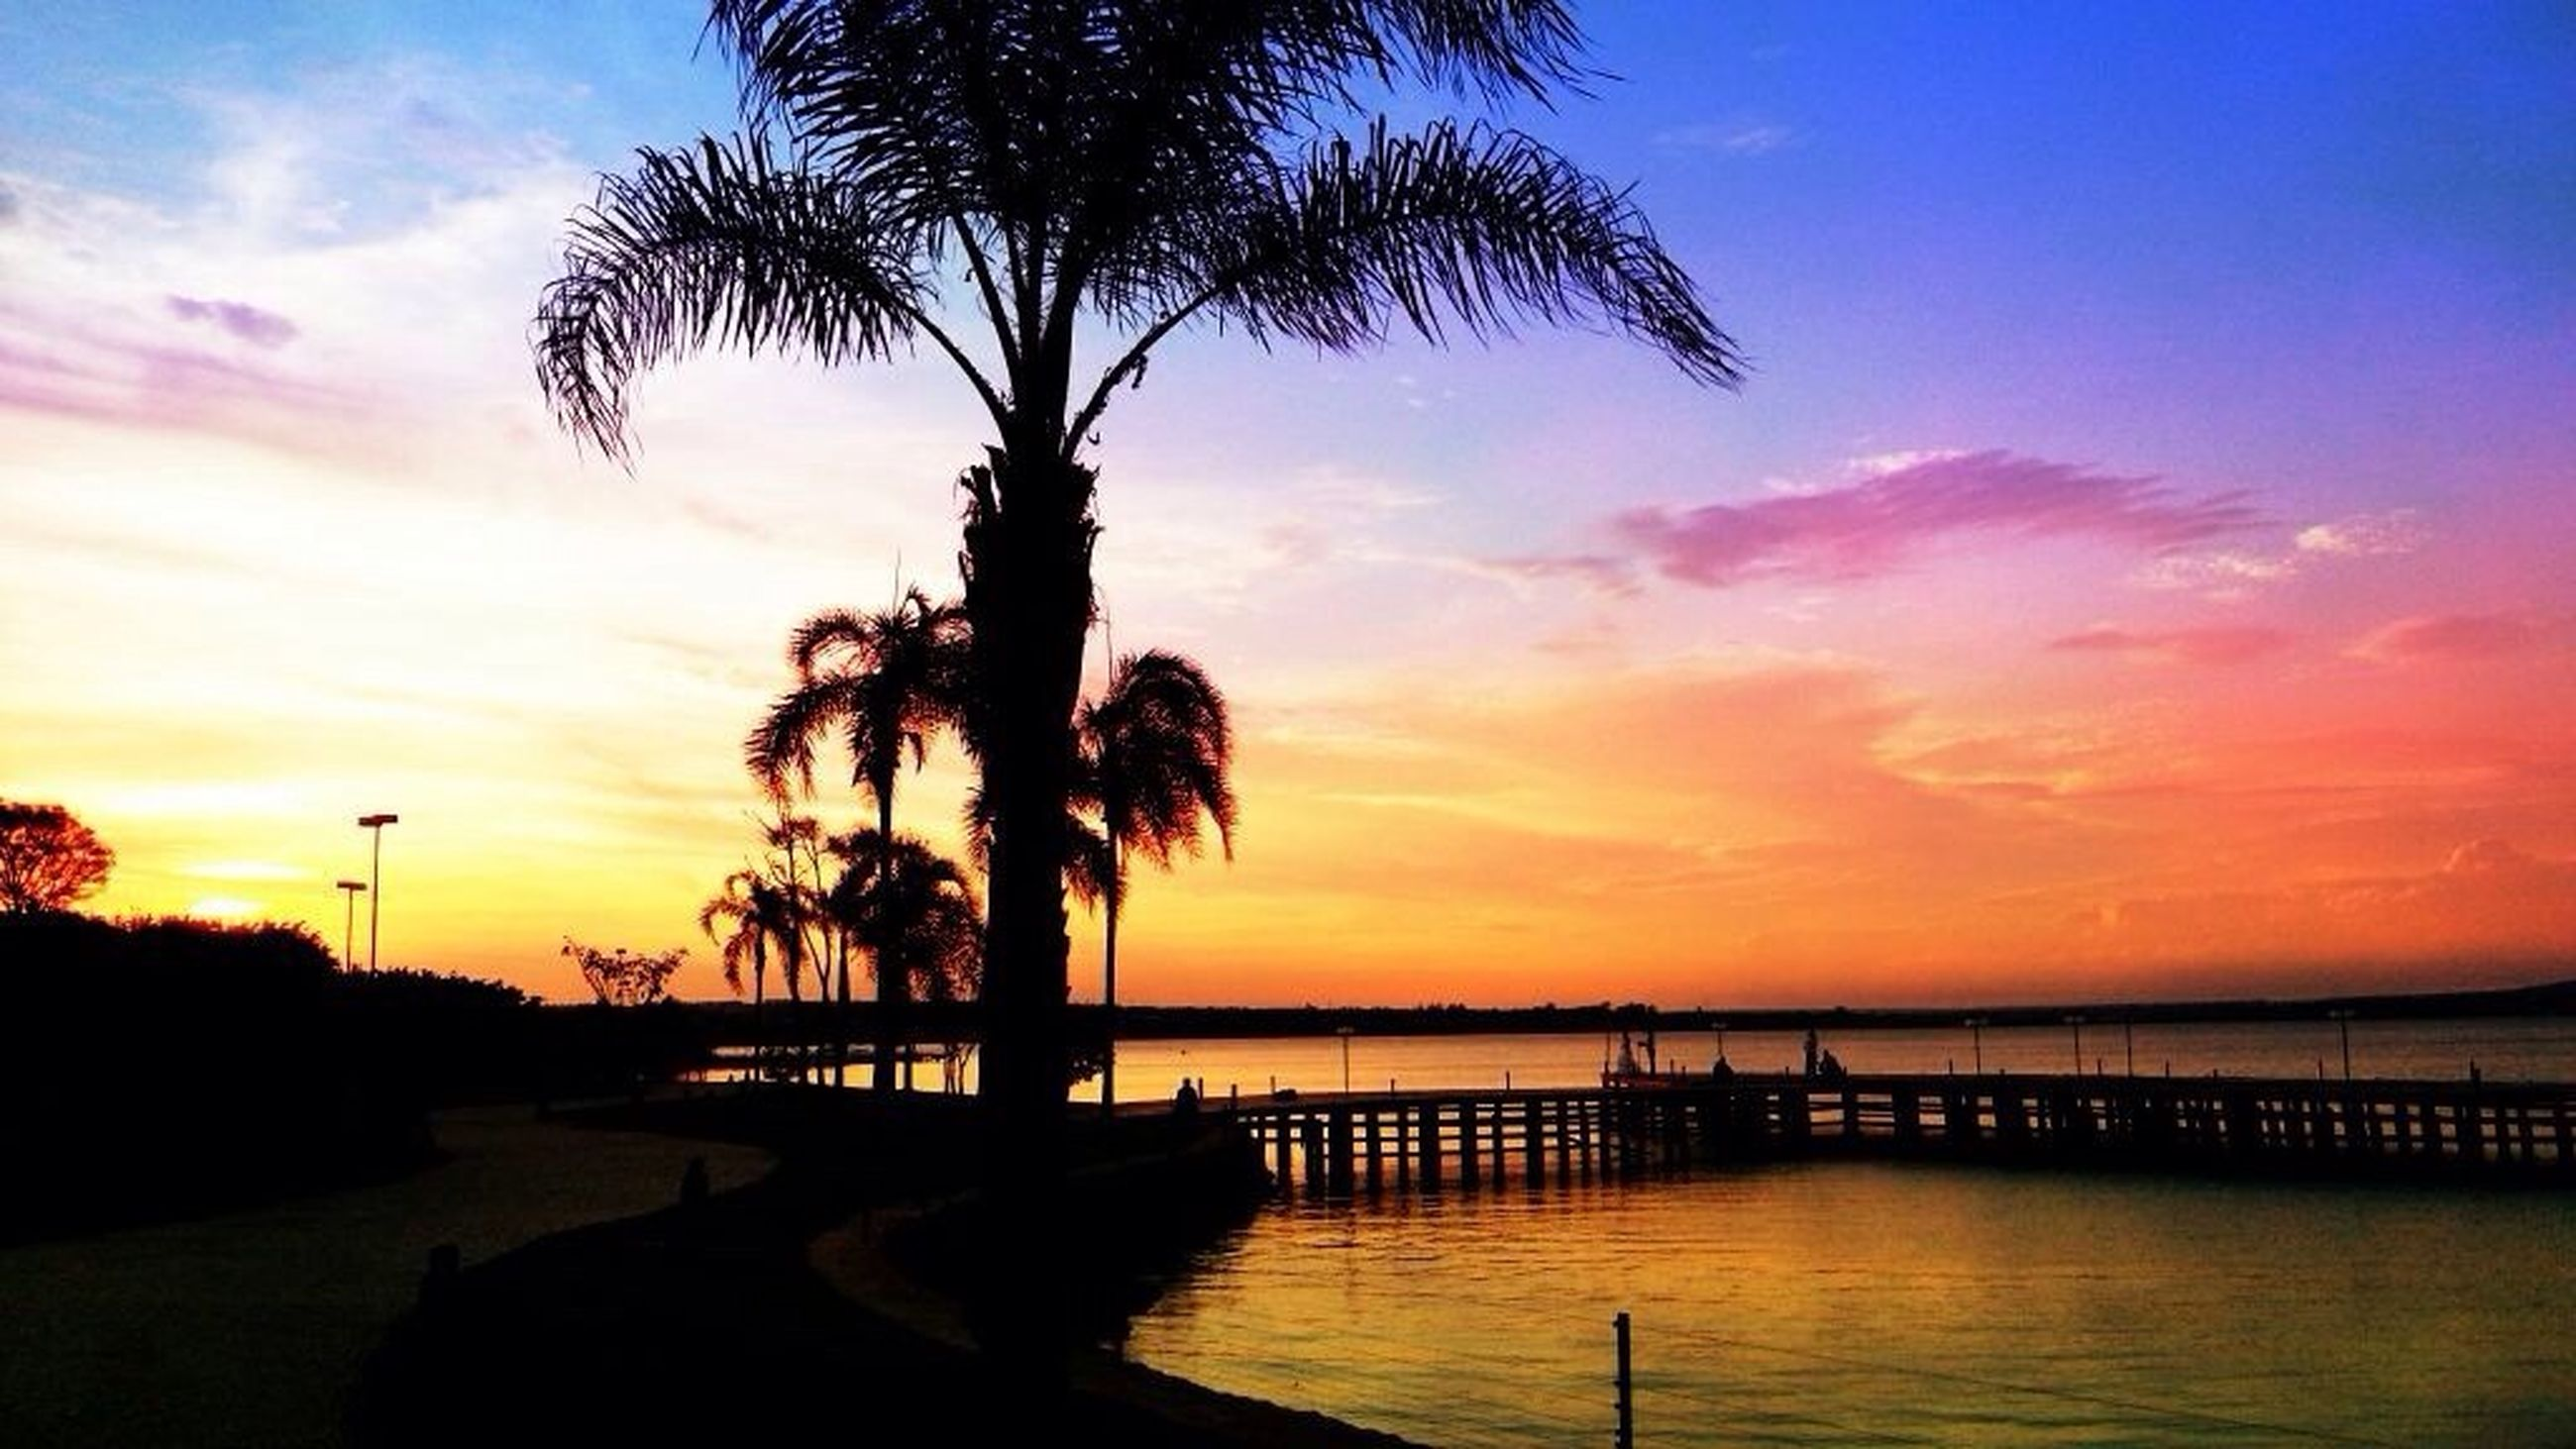 sunset, silhouette, scenics, tranquil scene, water, tranquility, beauty in nature, sky, tree, orange color, palm tree, sea, nature, idyllic, cloud - sky, dramatic sky, horizon over water, majestic, cloud, tree trunk